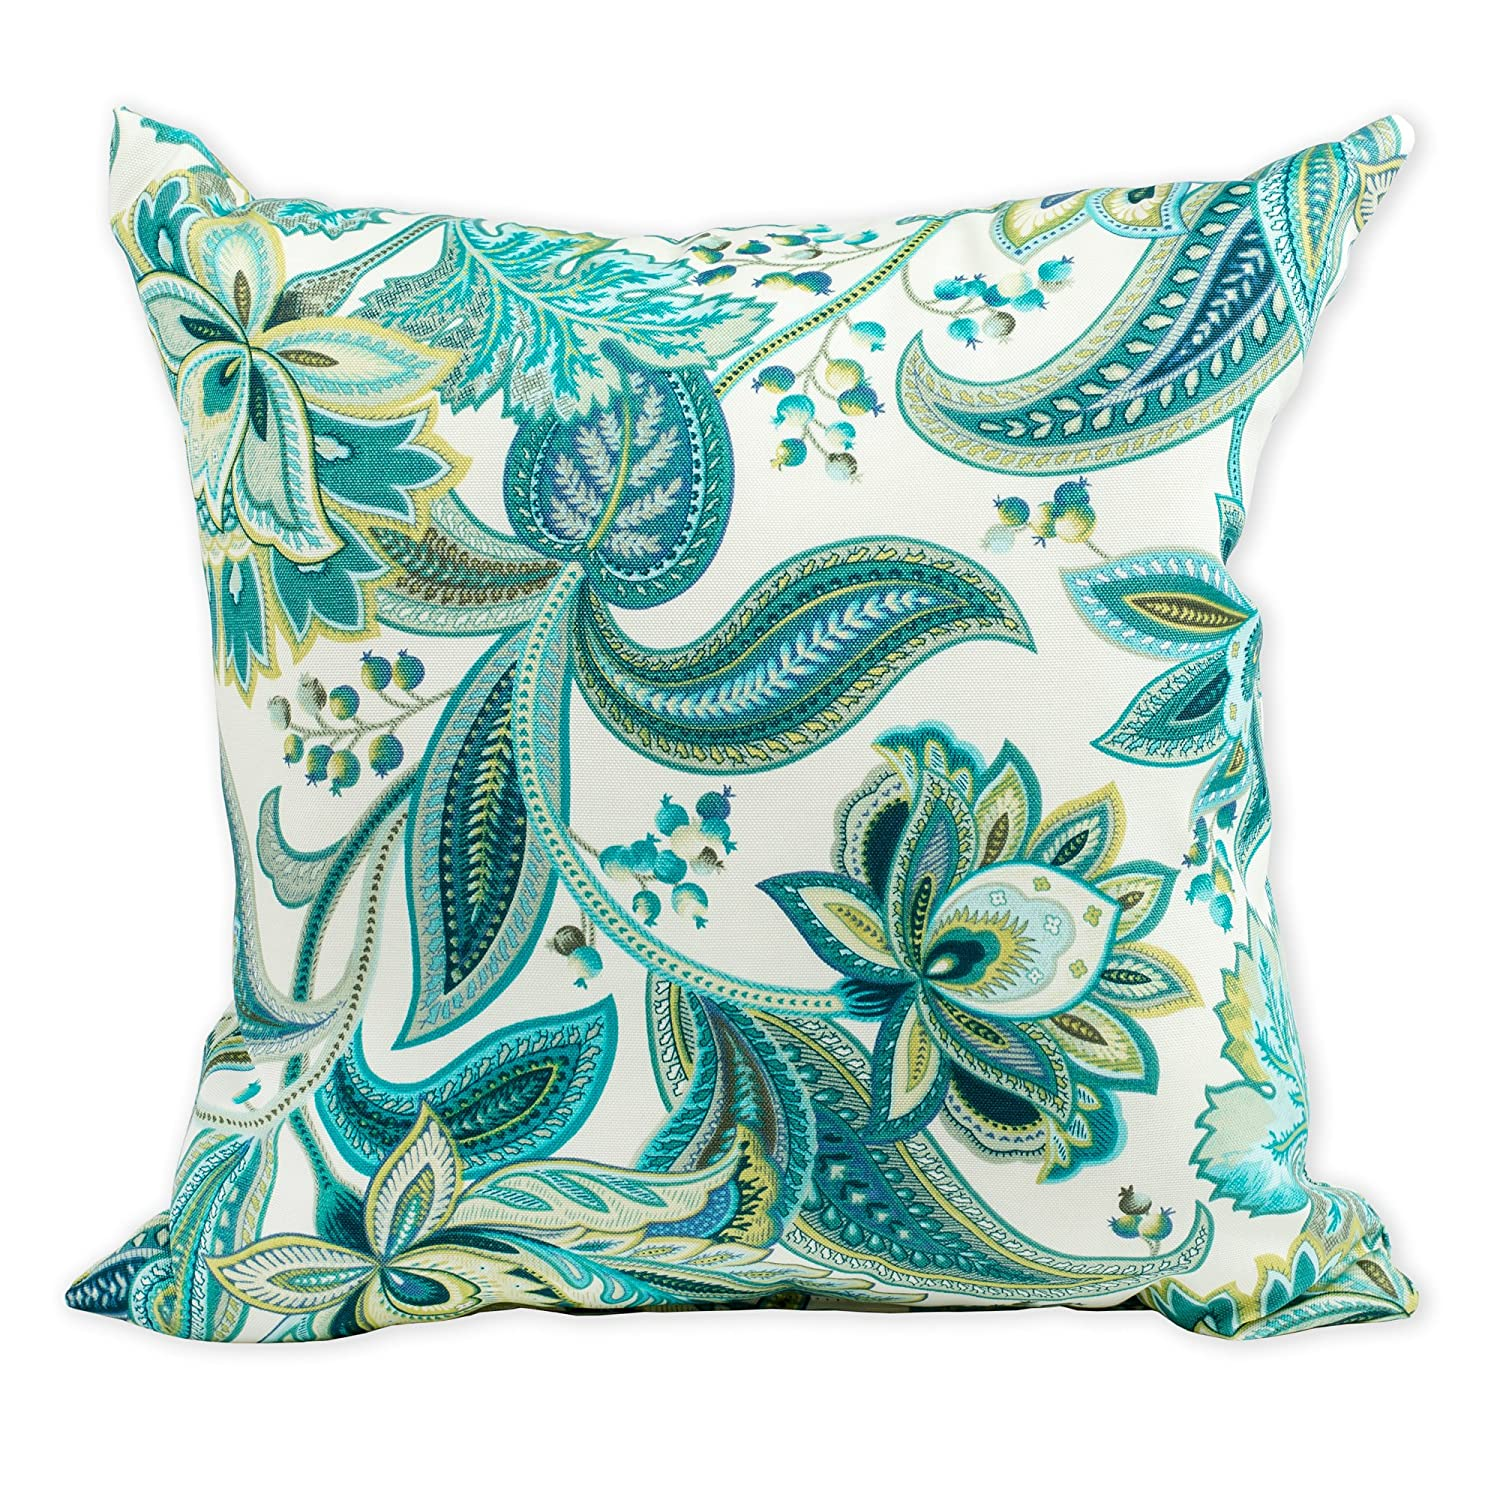 x 20 in, Sofa 12 in Designart CU13747-12-20 Full Bloom Pink Flower with Leaves Floral Lumbar Cushion Cover for Living Room Throw Pillow